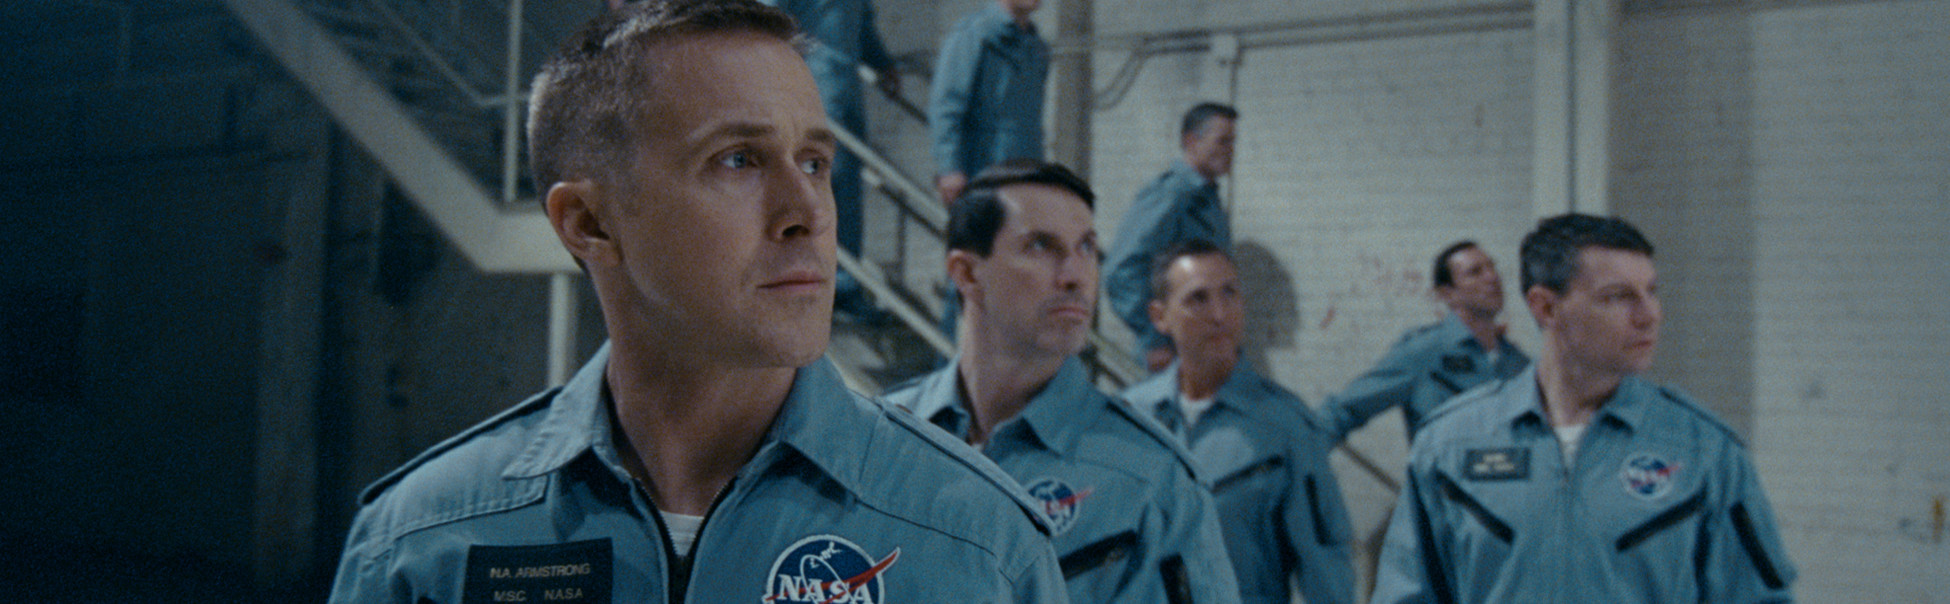 First Man at IFI open captioned screenings